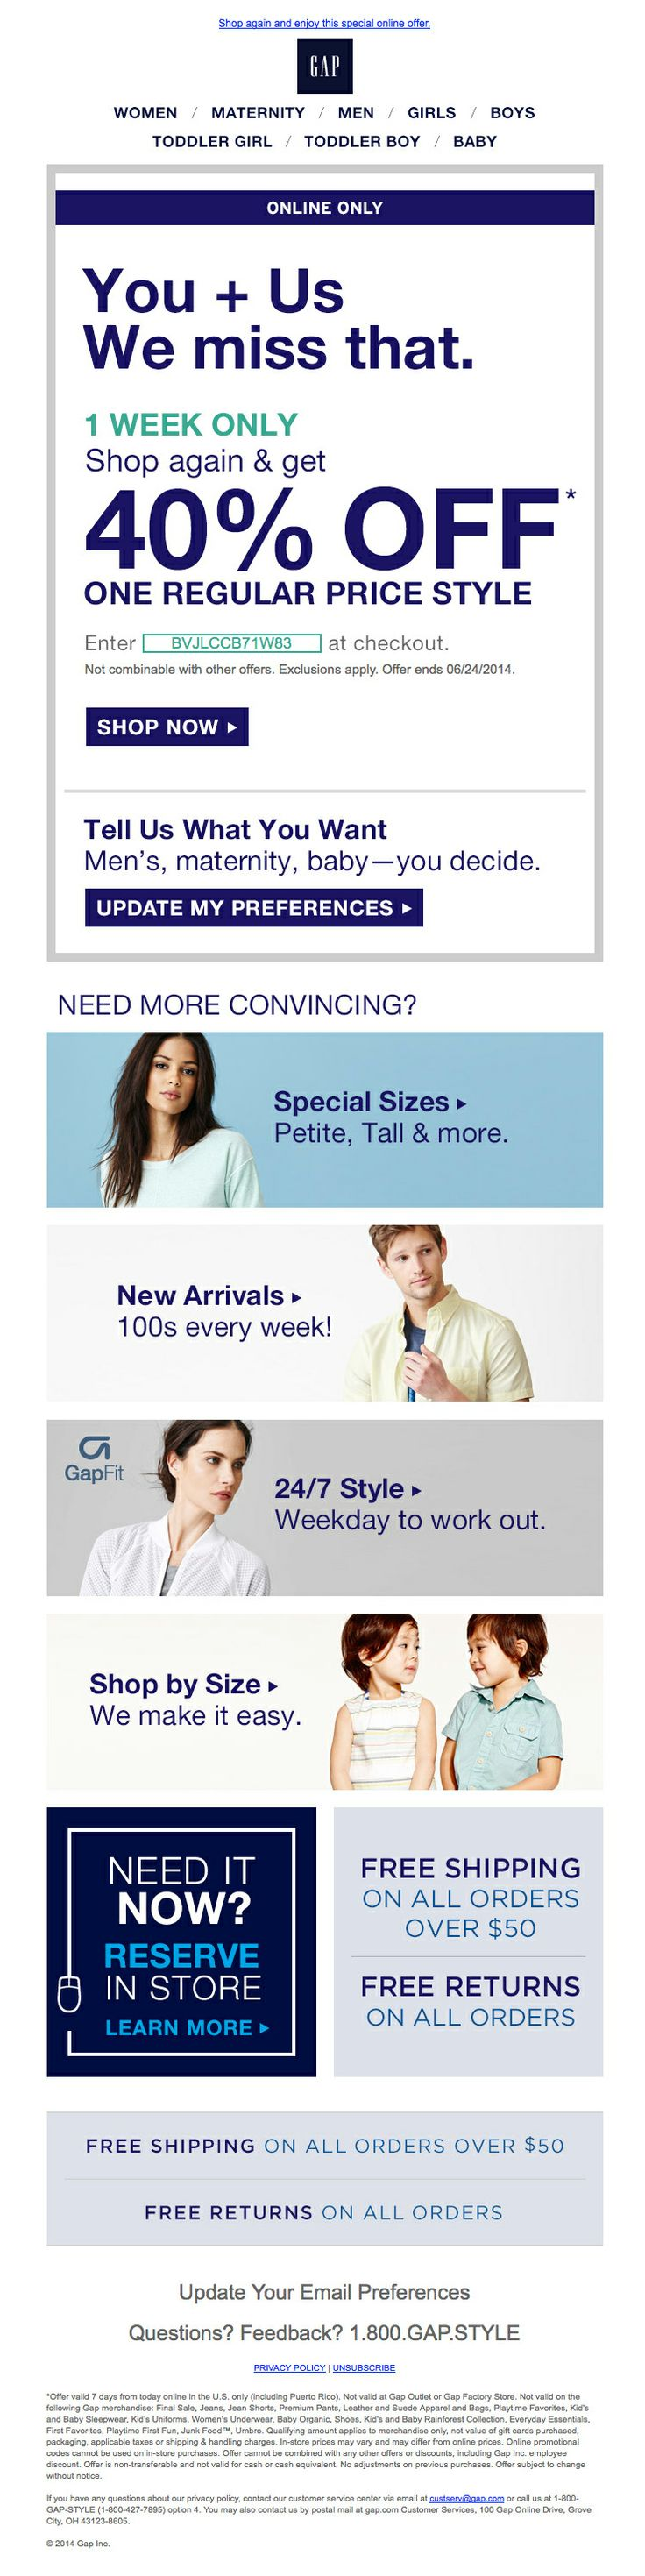 """Win Back campaign from GAP, provides an offer, invite to update preferences, and touts the """"why Gap"""" features and functionality."""